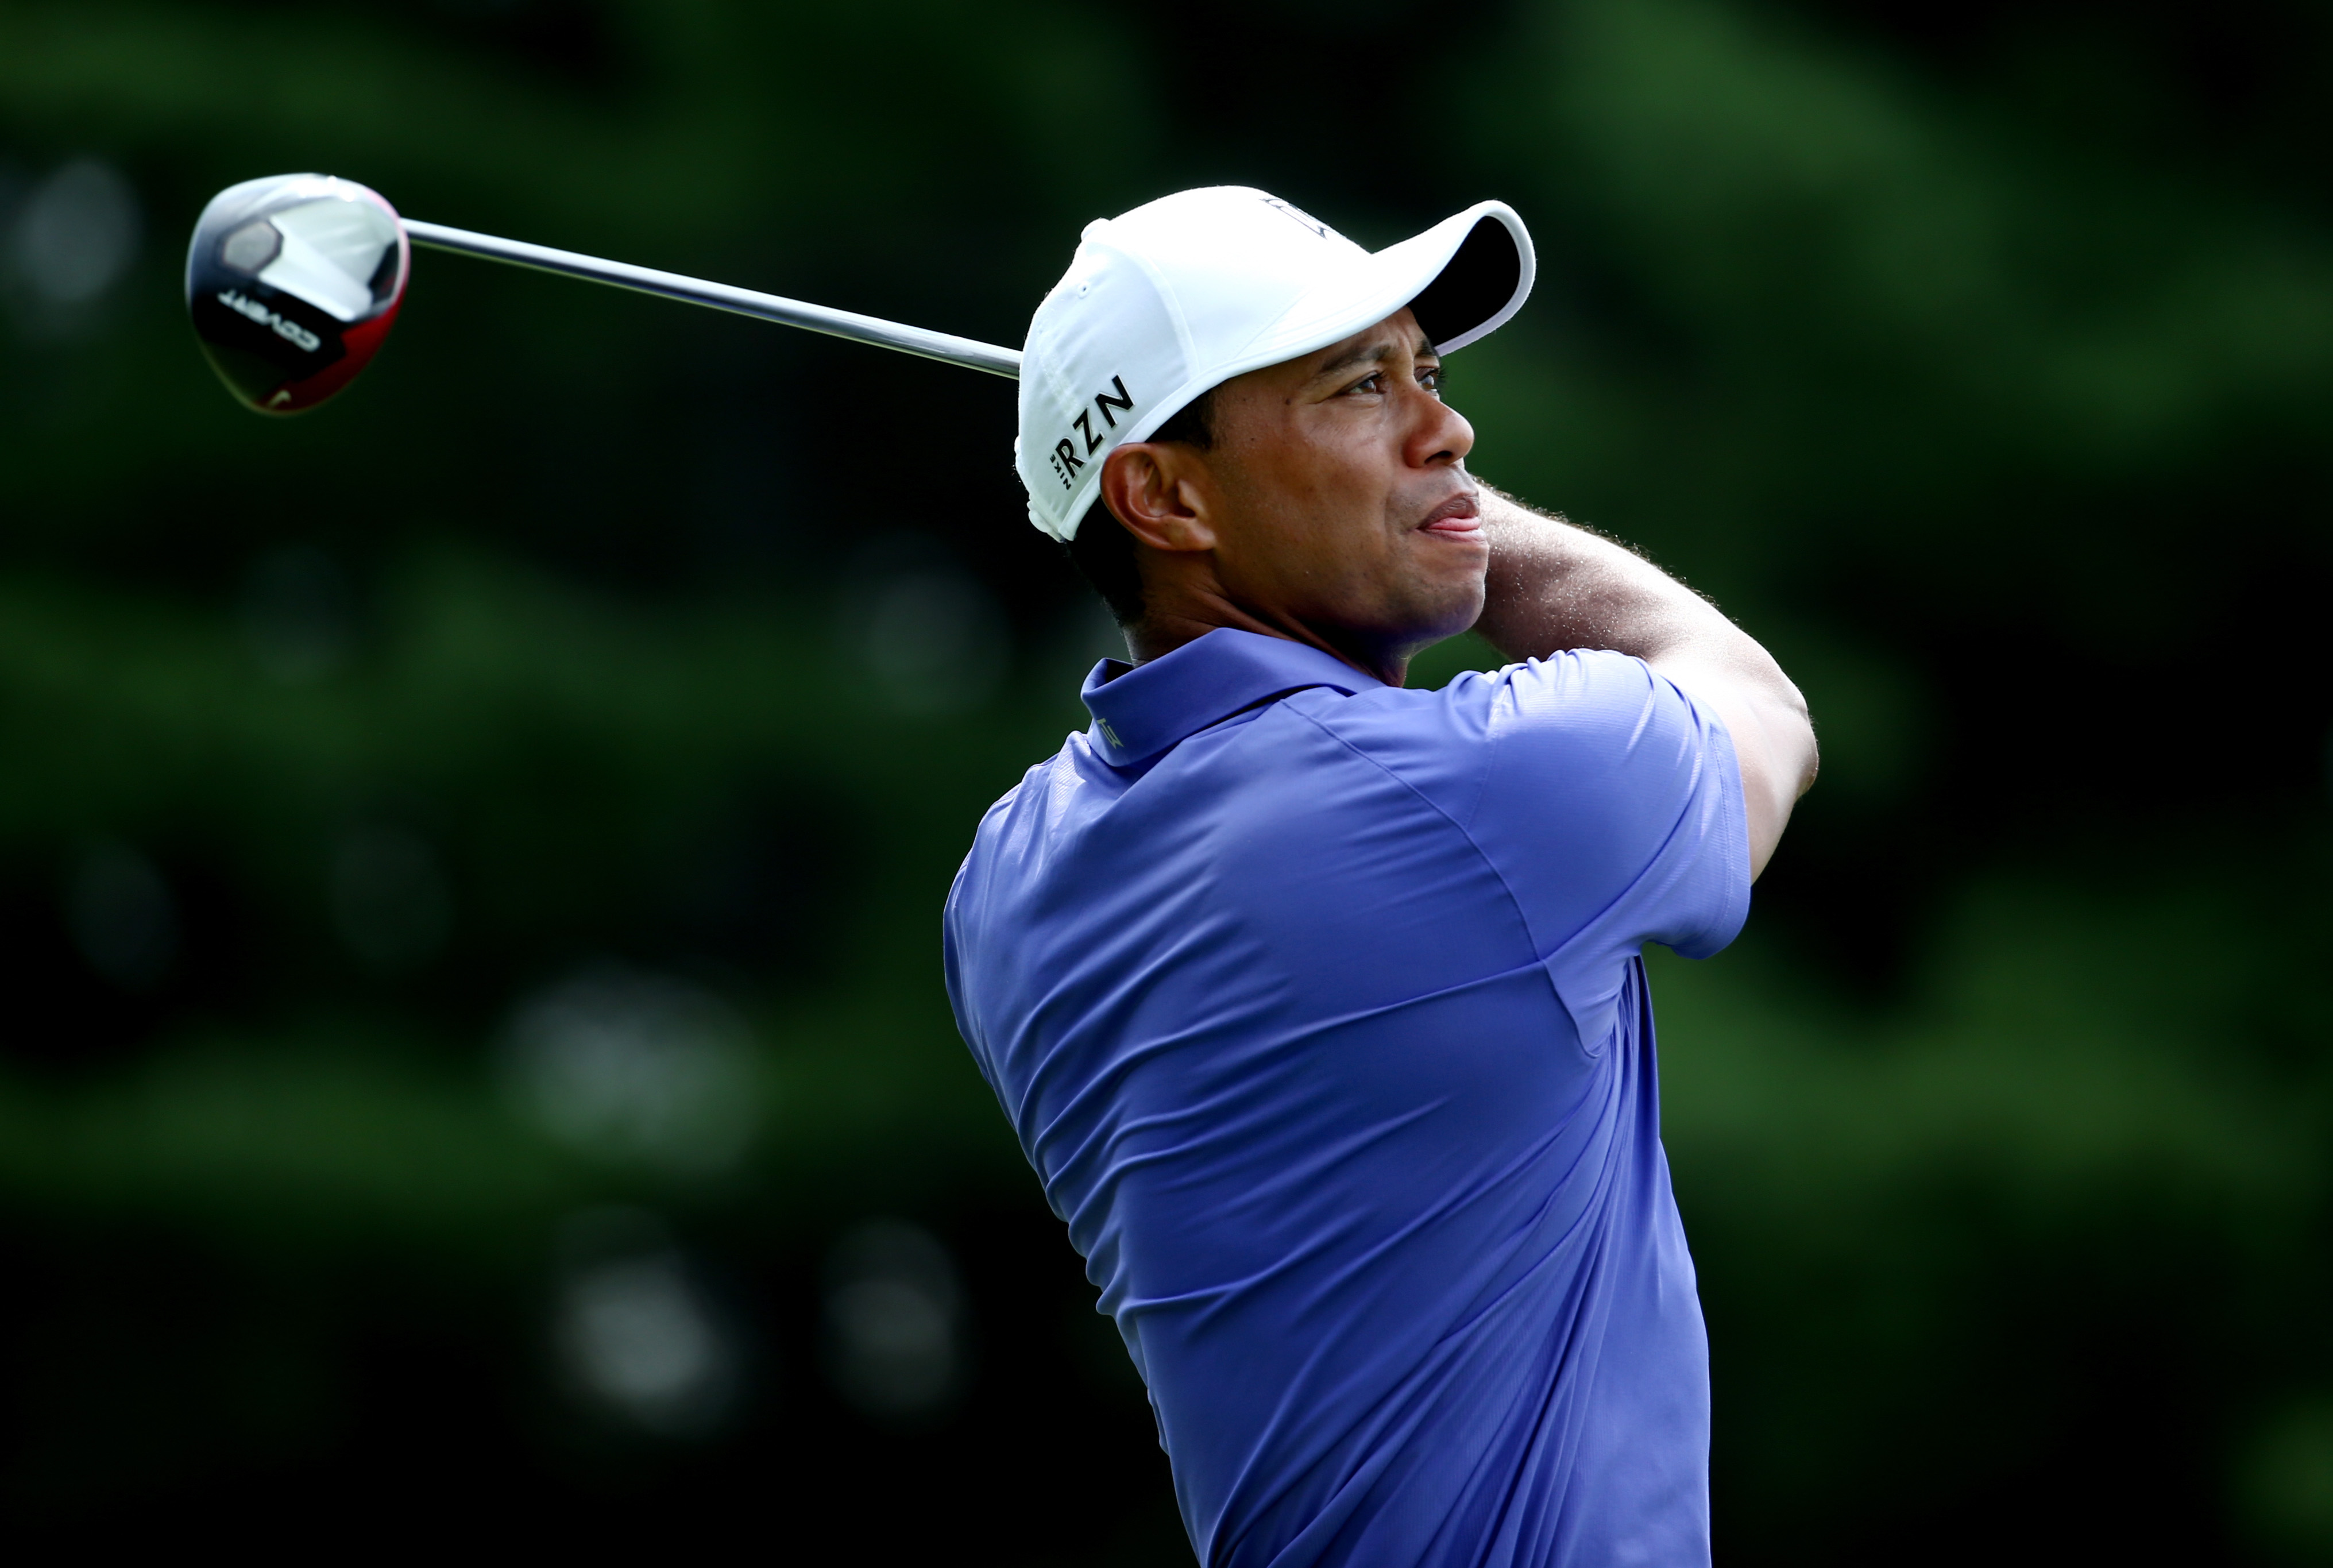 Tiger Woods of the United States hits a tee shot during the first round of the 96th PGA Championship at Valhalla Golf Club on August 7, 2014 in Louisville, Kentucky.